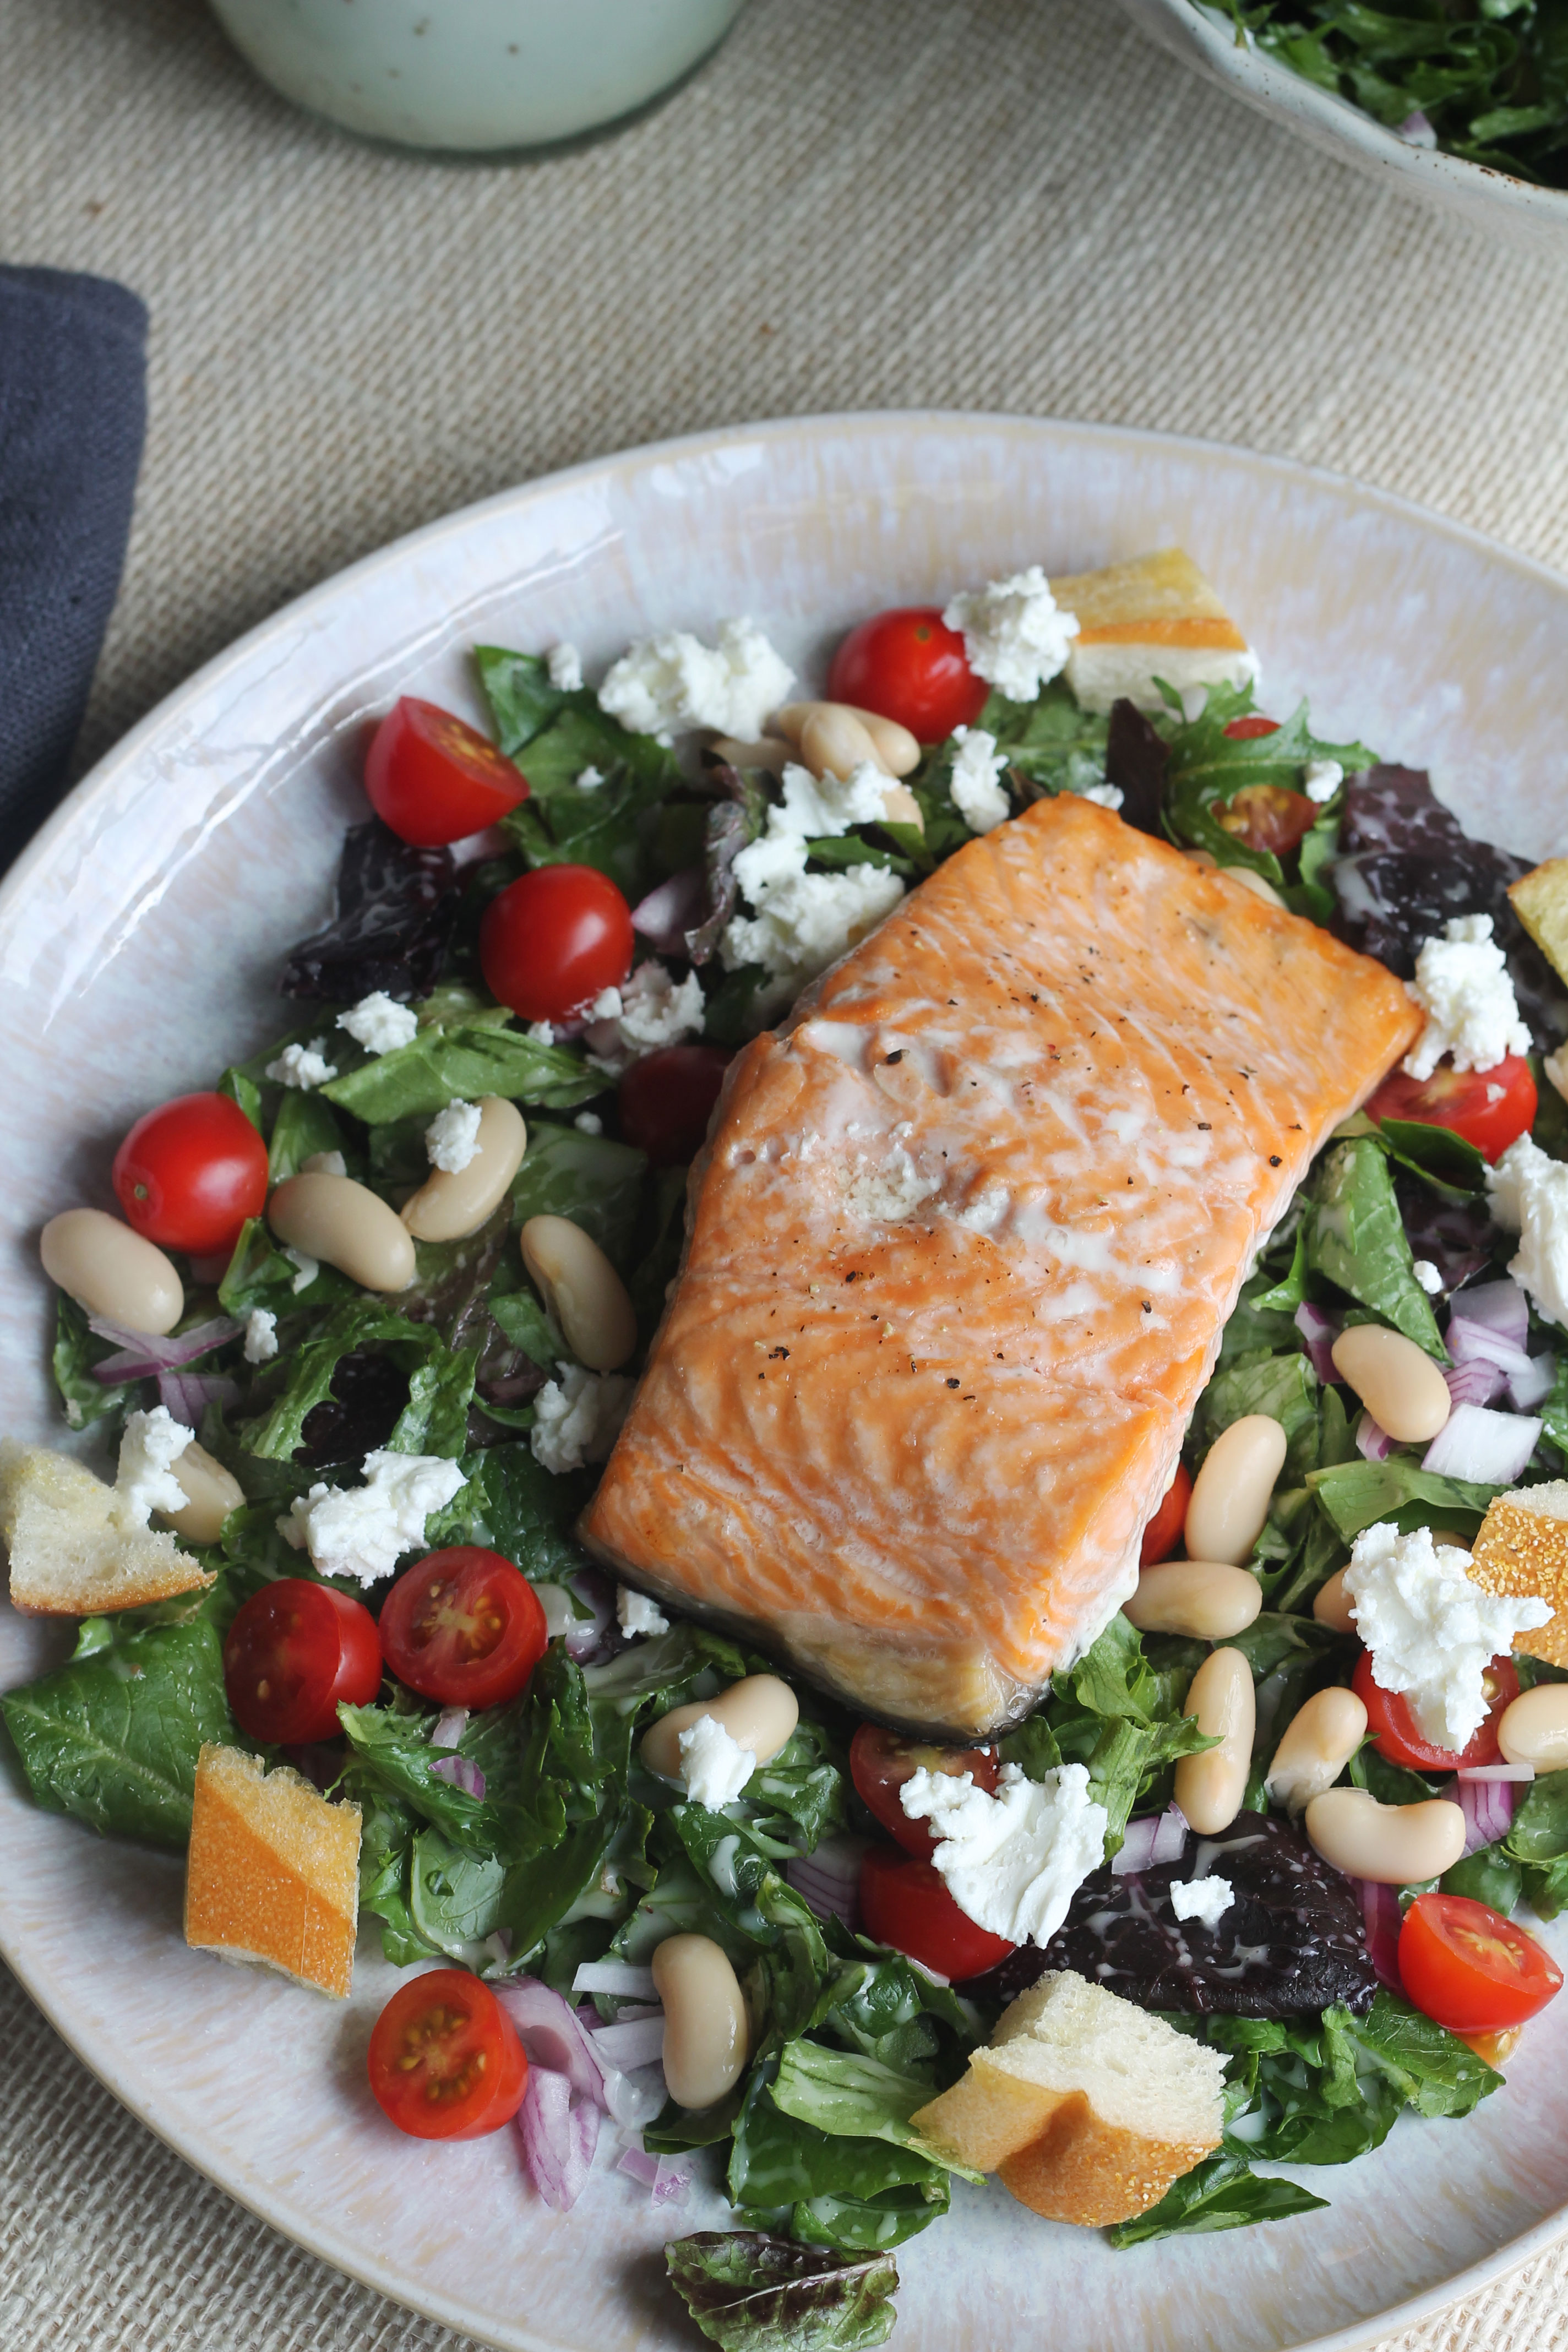 This Salmon Panzanella Salad is light and refreshing - perfect for this time of year